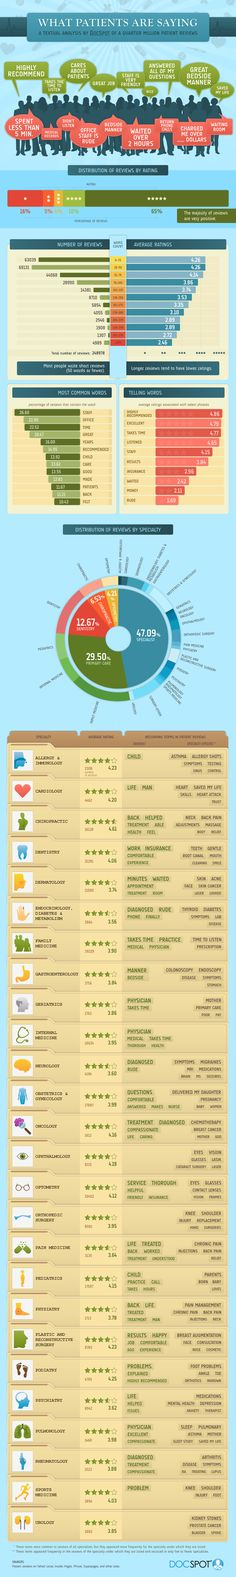 The infographic shown here is a visual representation of text data analysis from a quarter million online doctor reviews at DocSpot. Paying attention to language used by patients, what information can we glean from this representation as we transition to the Patient Centered Medical Home model?